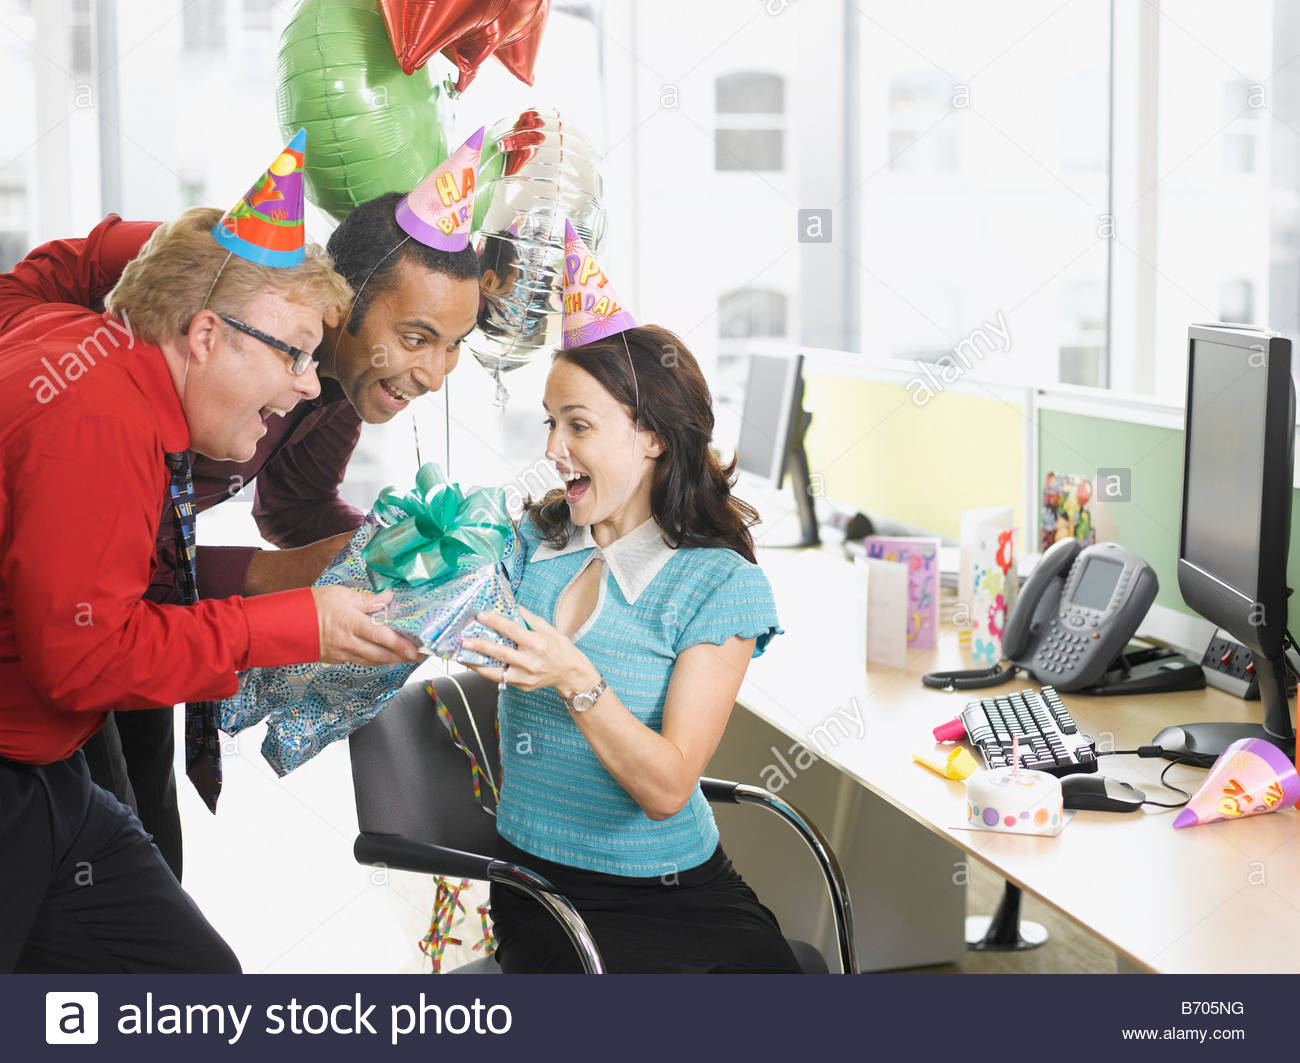 Businessmen Giving Birthday Gift To Co Worker